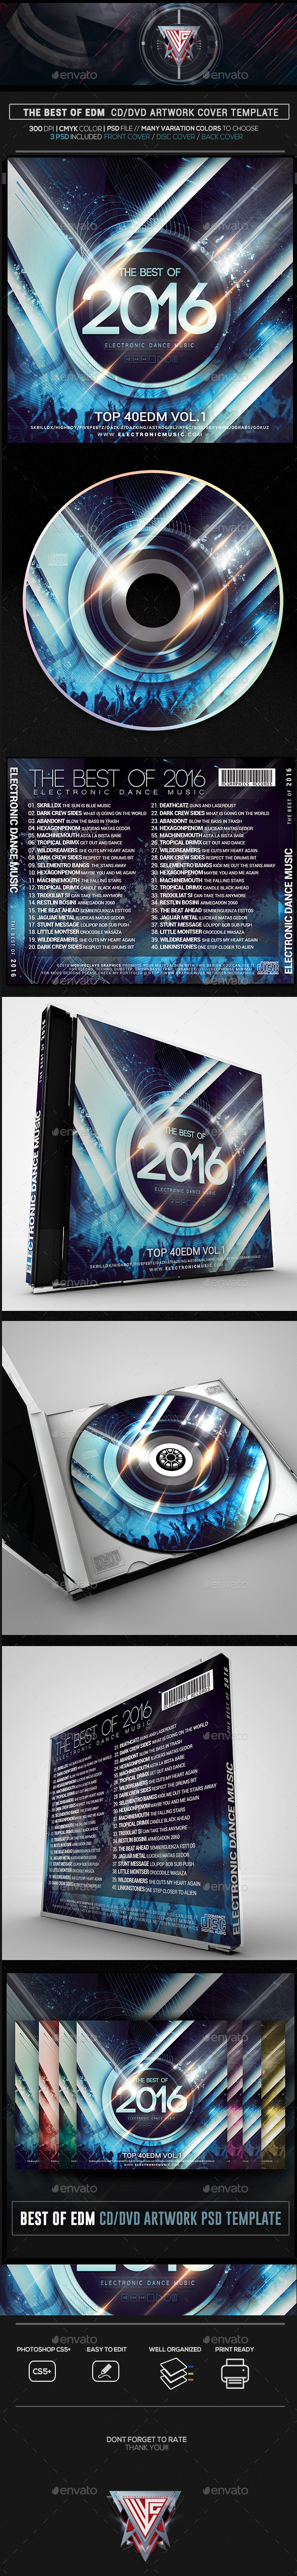 EDM 2016 CD/DVD Template - CD & DVD Artwork Print Templates